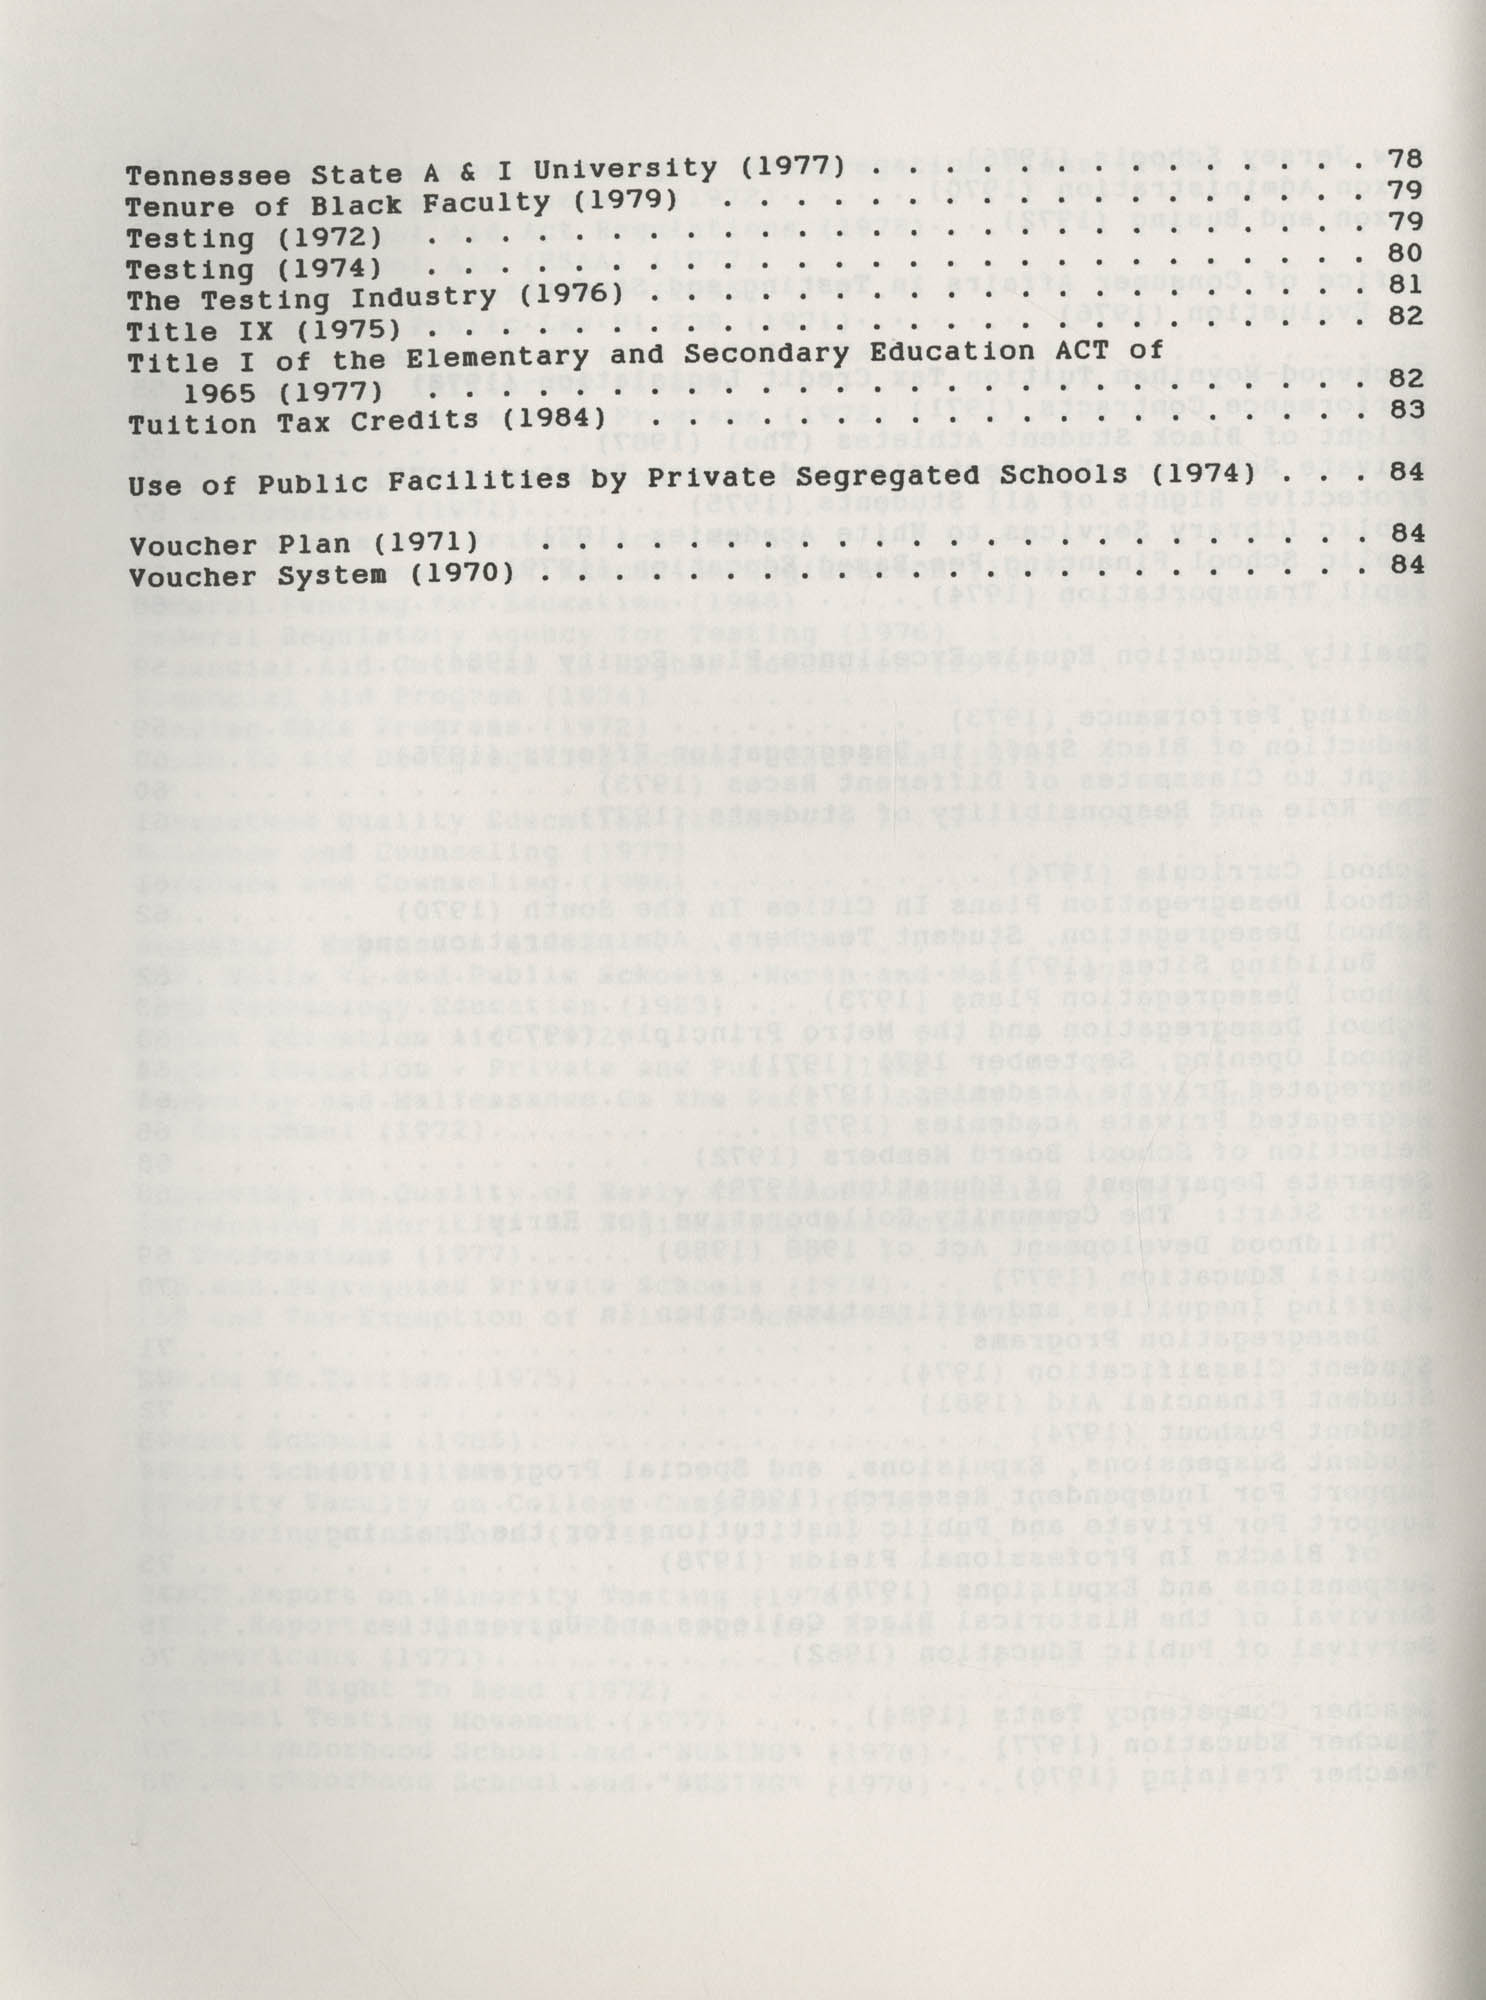 NAACP Resolutions on Education, 1970-1989, Index to Education Resolutions, Table of Contents, Page 4